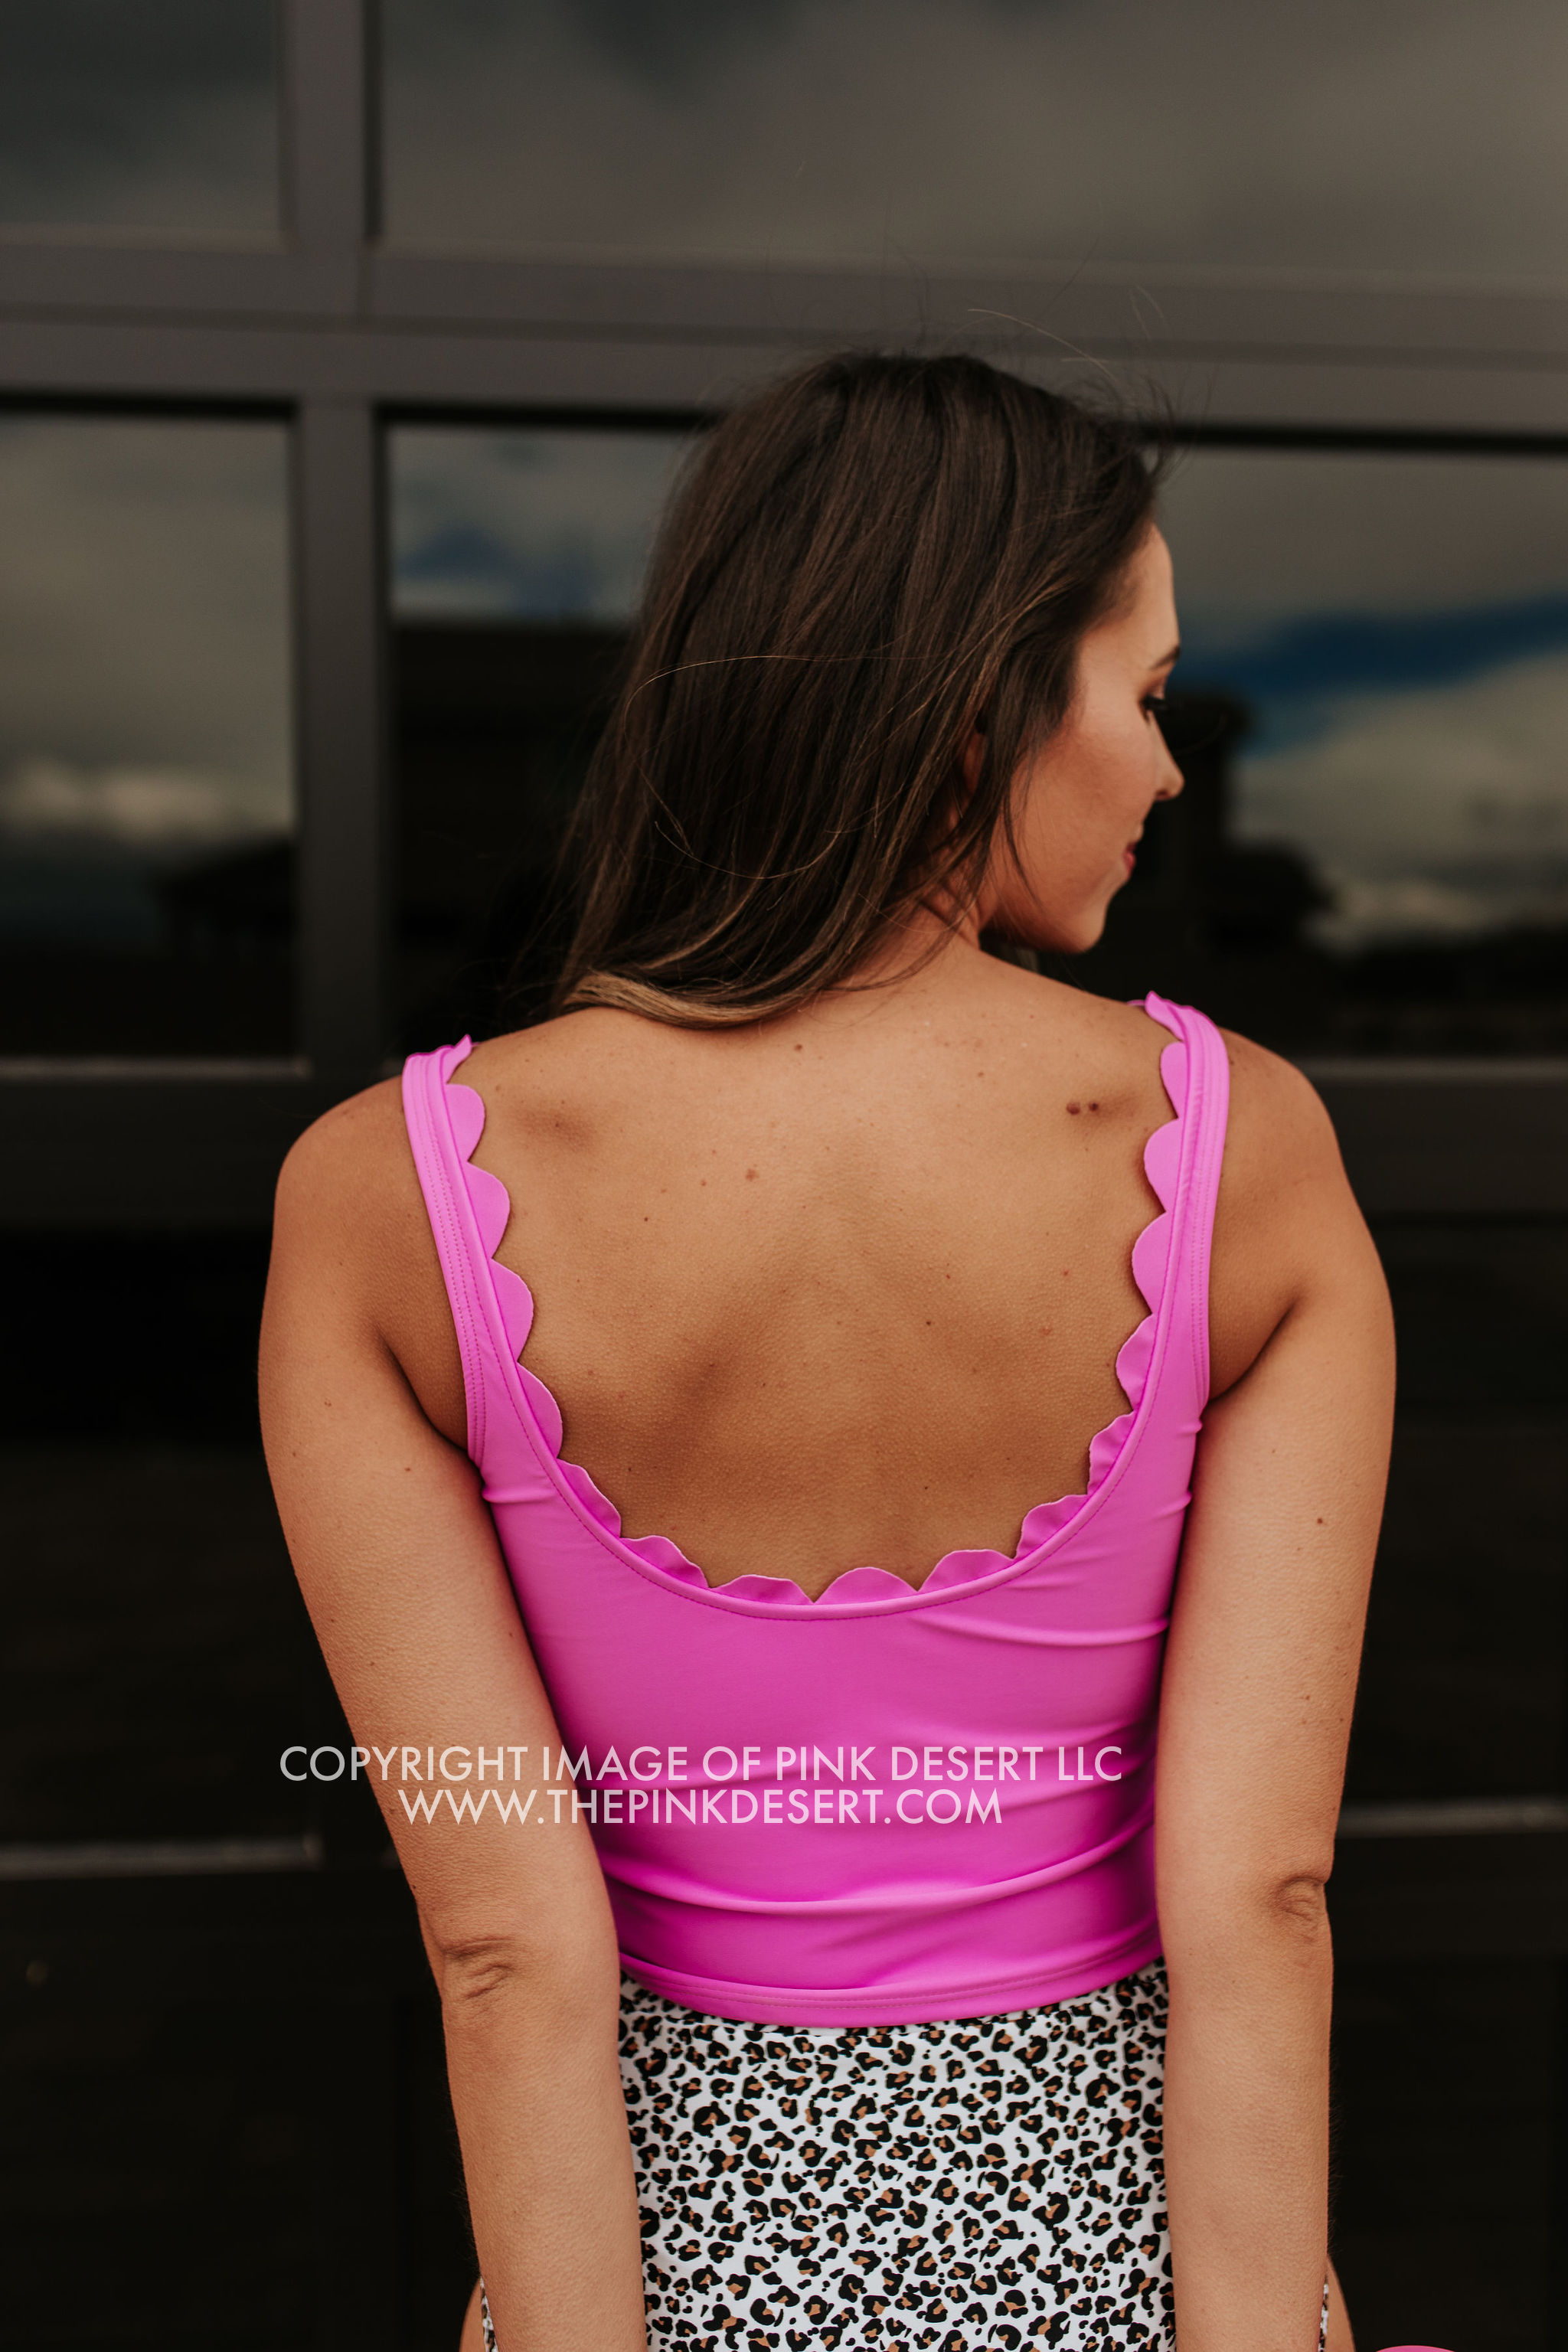 PINK DESERT SCALLOPED MIDKINI SWIM TOP IN NEON LILAC